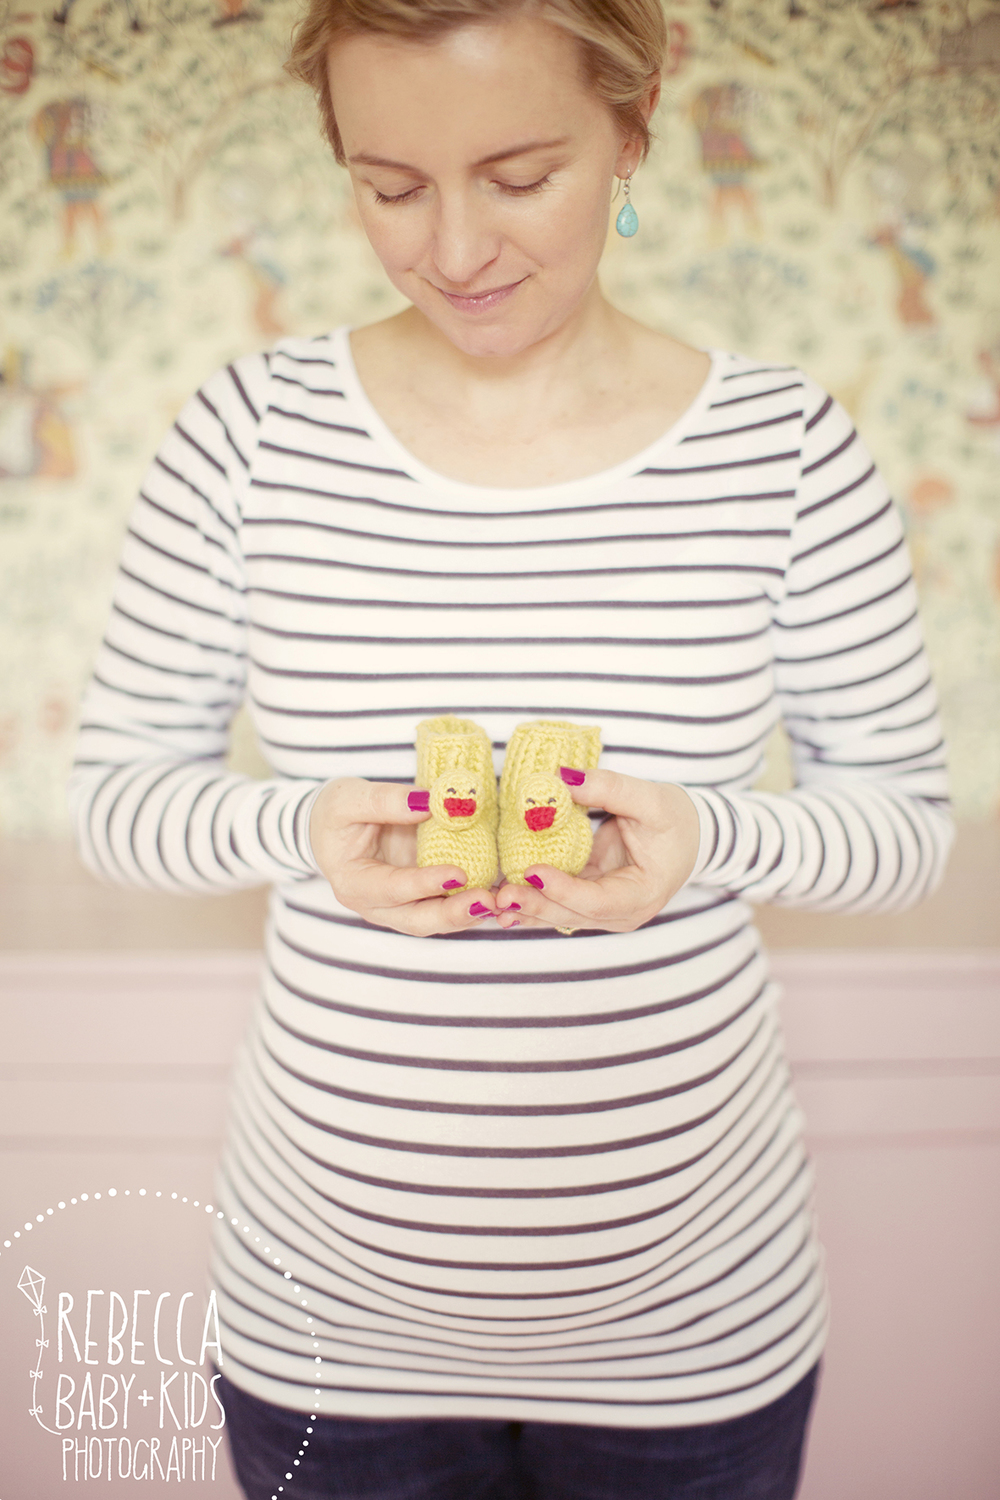 Photo by Rebecca Baby & Kids Photography Booties from Cath Kidston